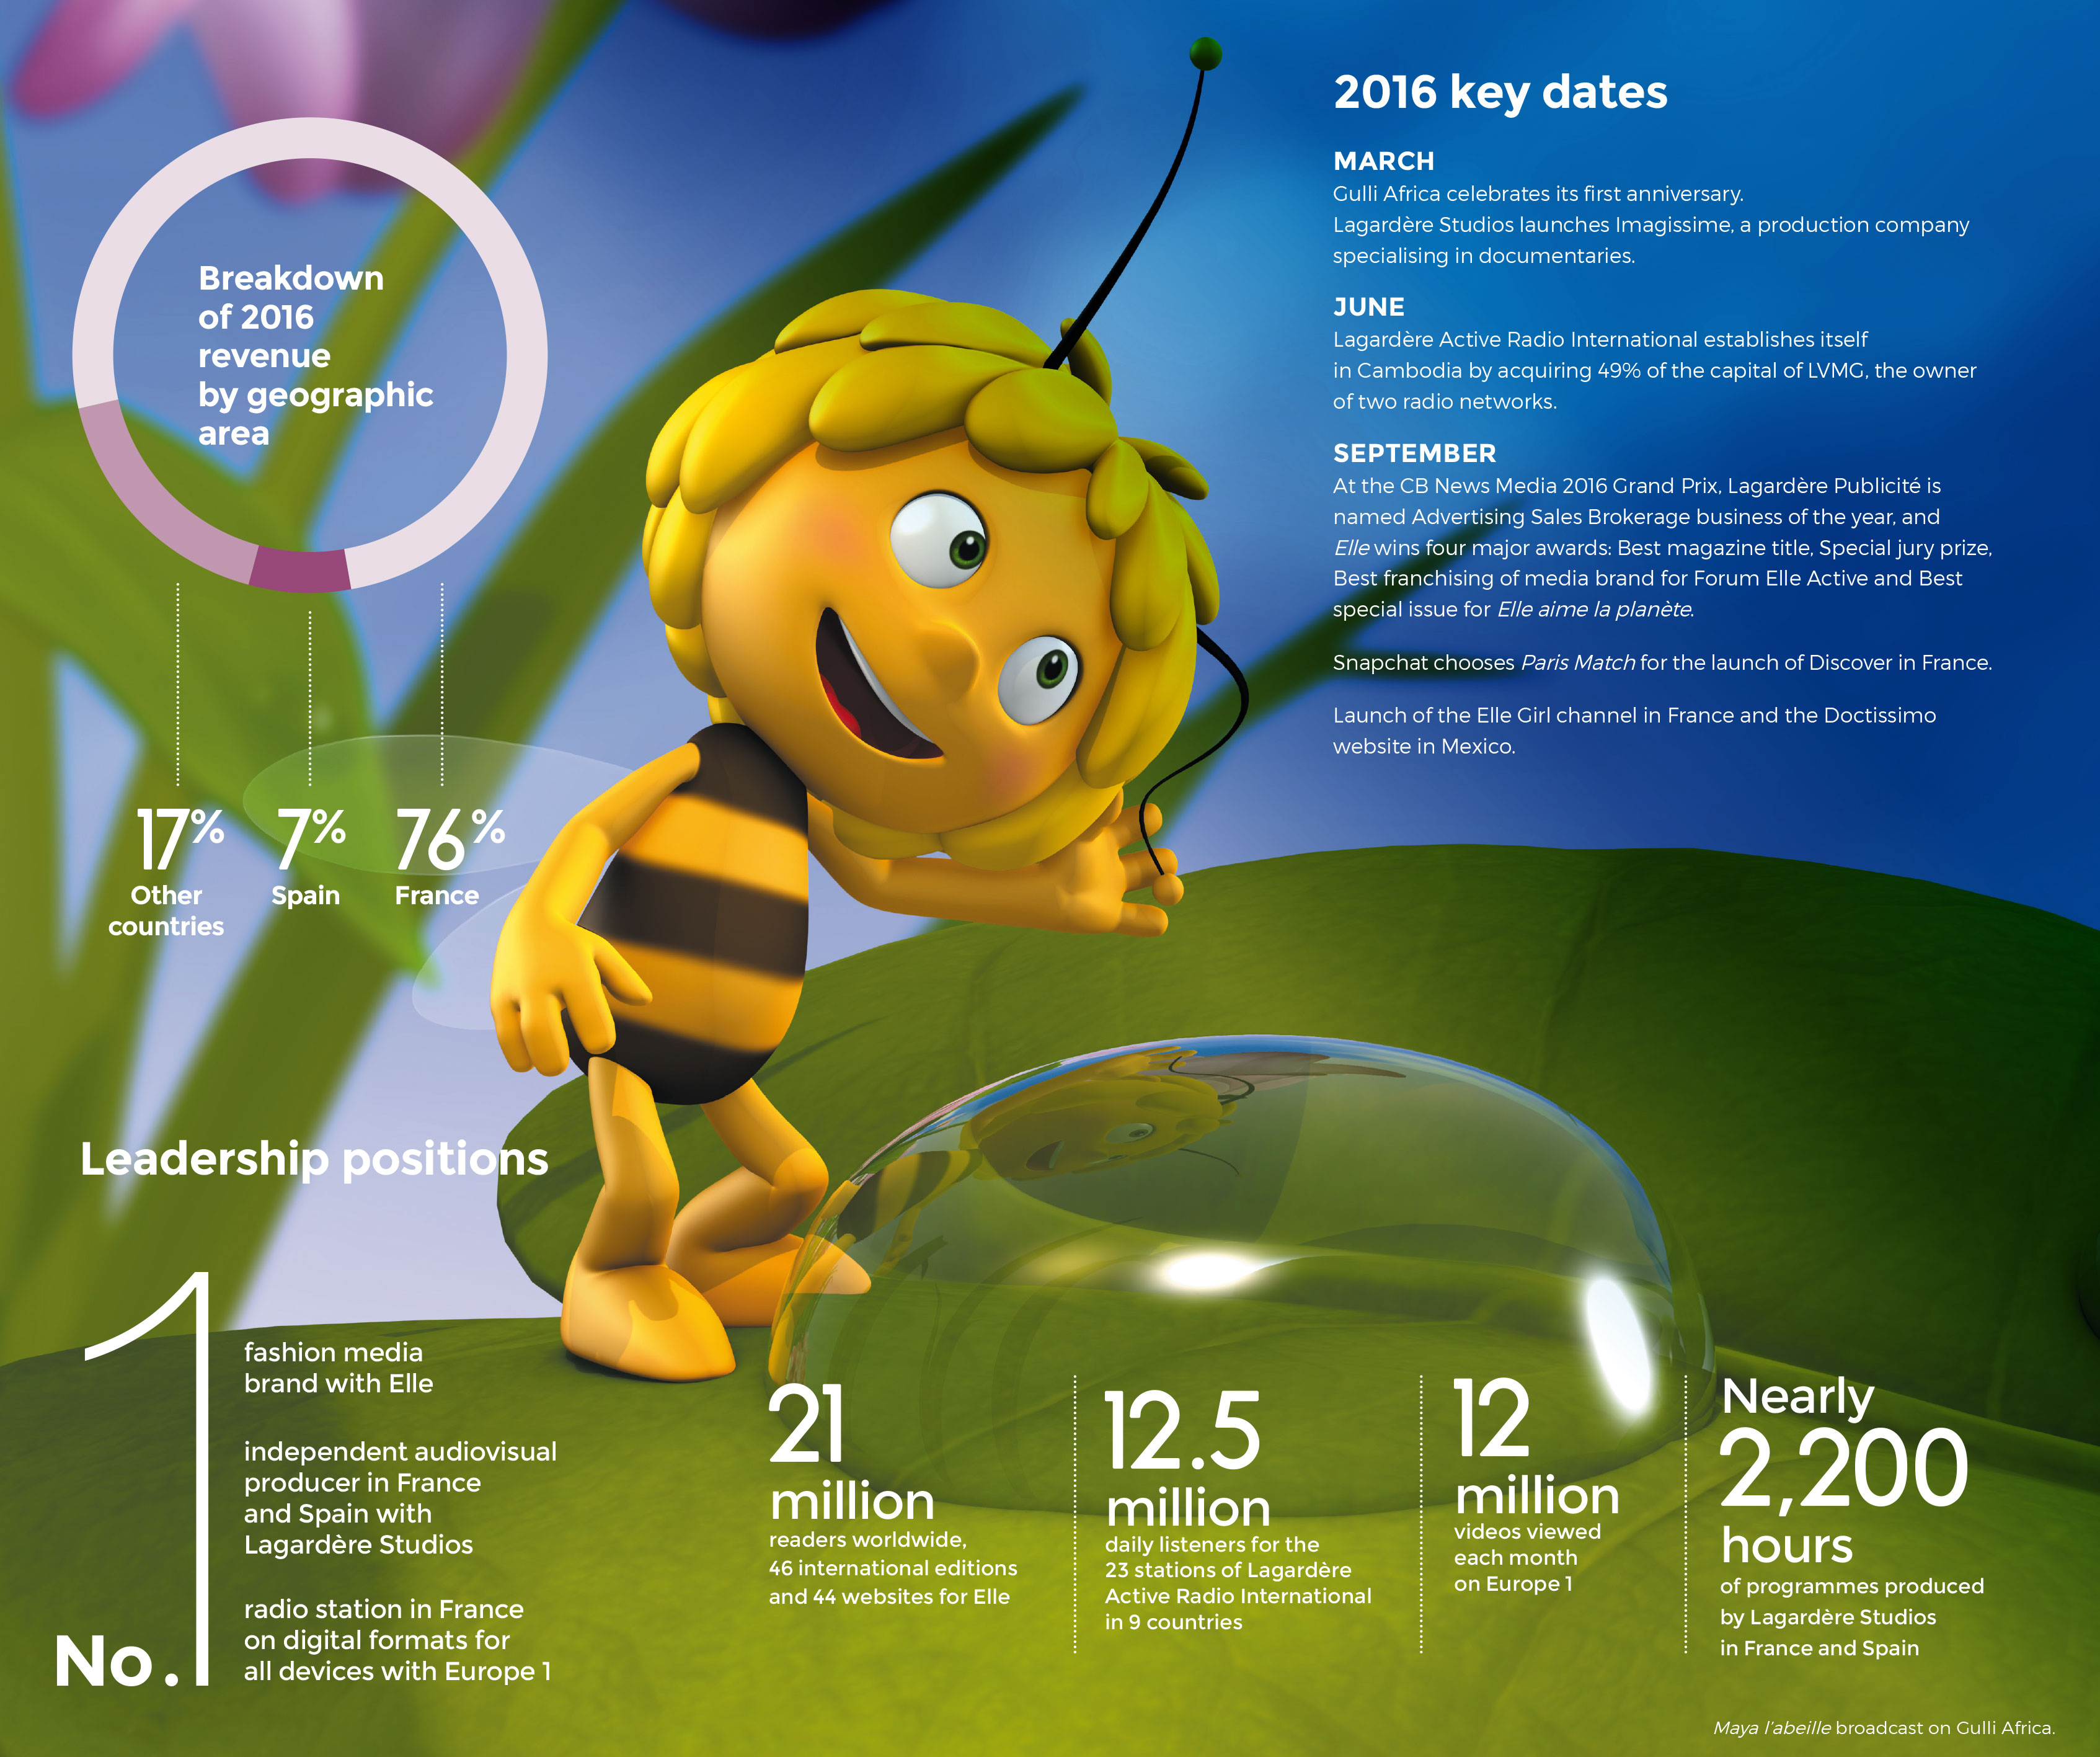 Maya l'abeille broadcast on Gulli Africa